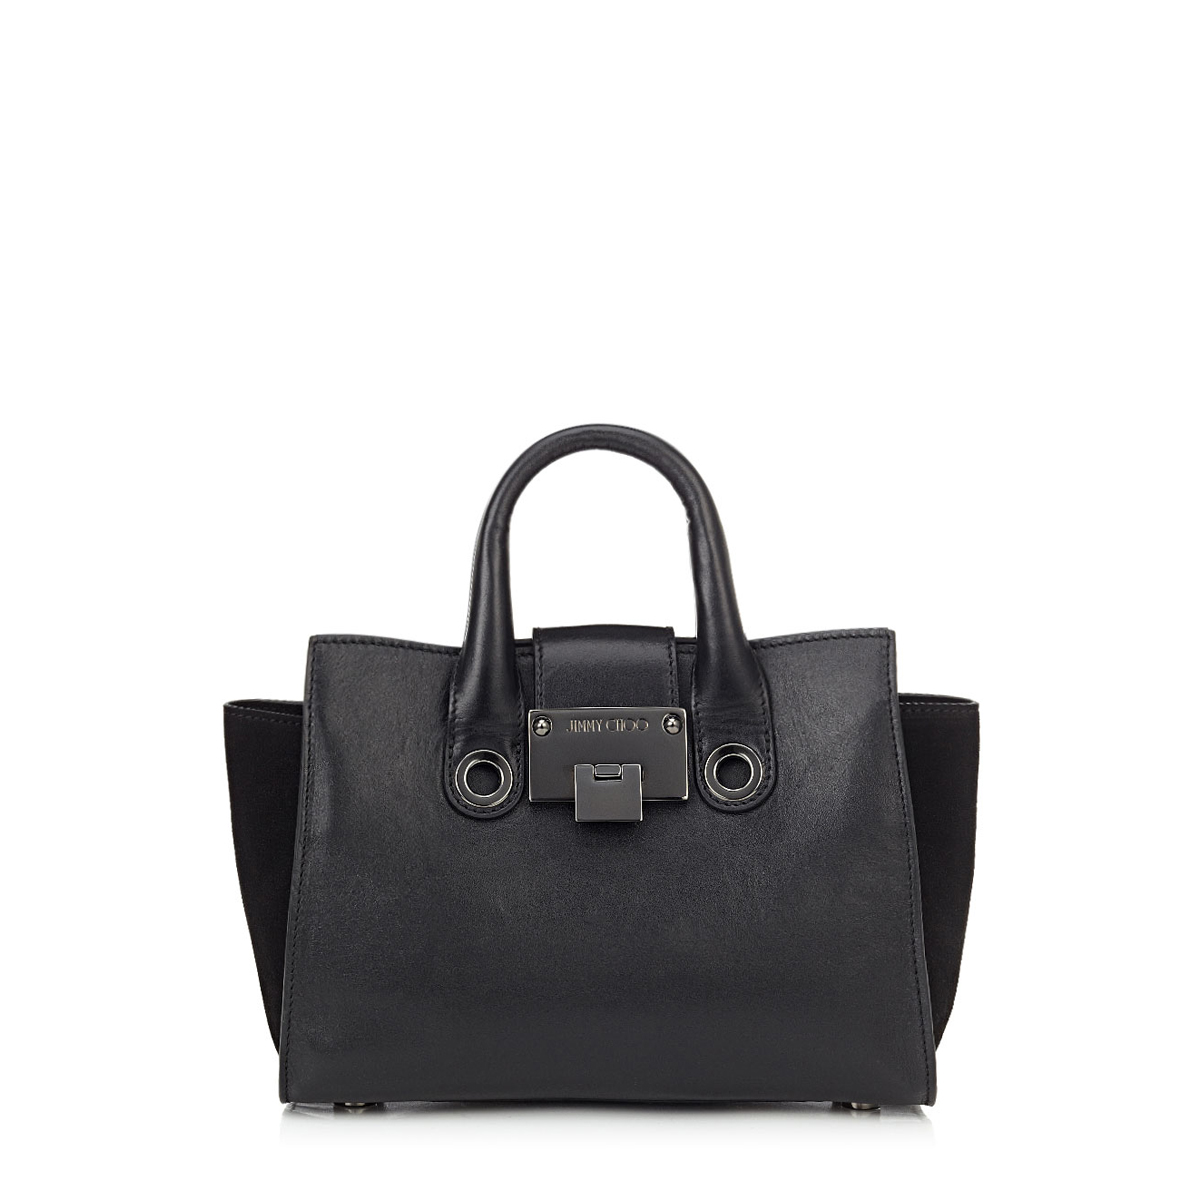 RILEY S Black Smooth Leather and Suede Small Tote Bag